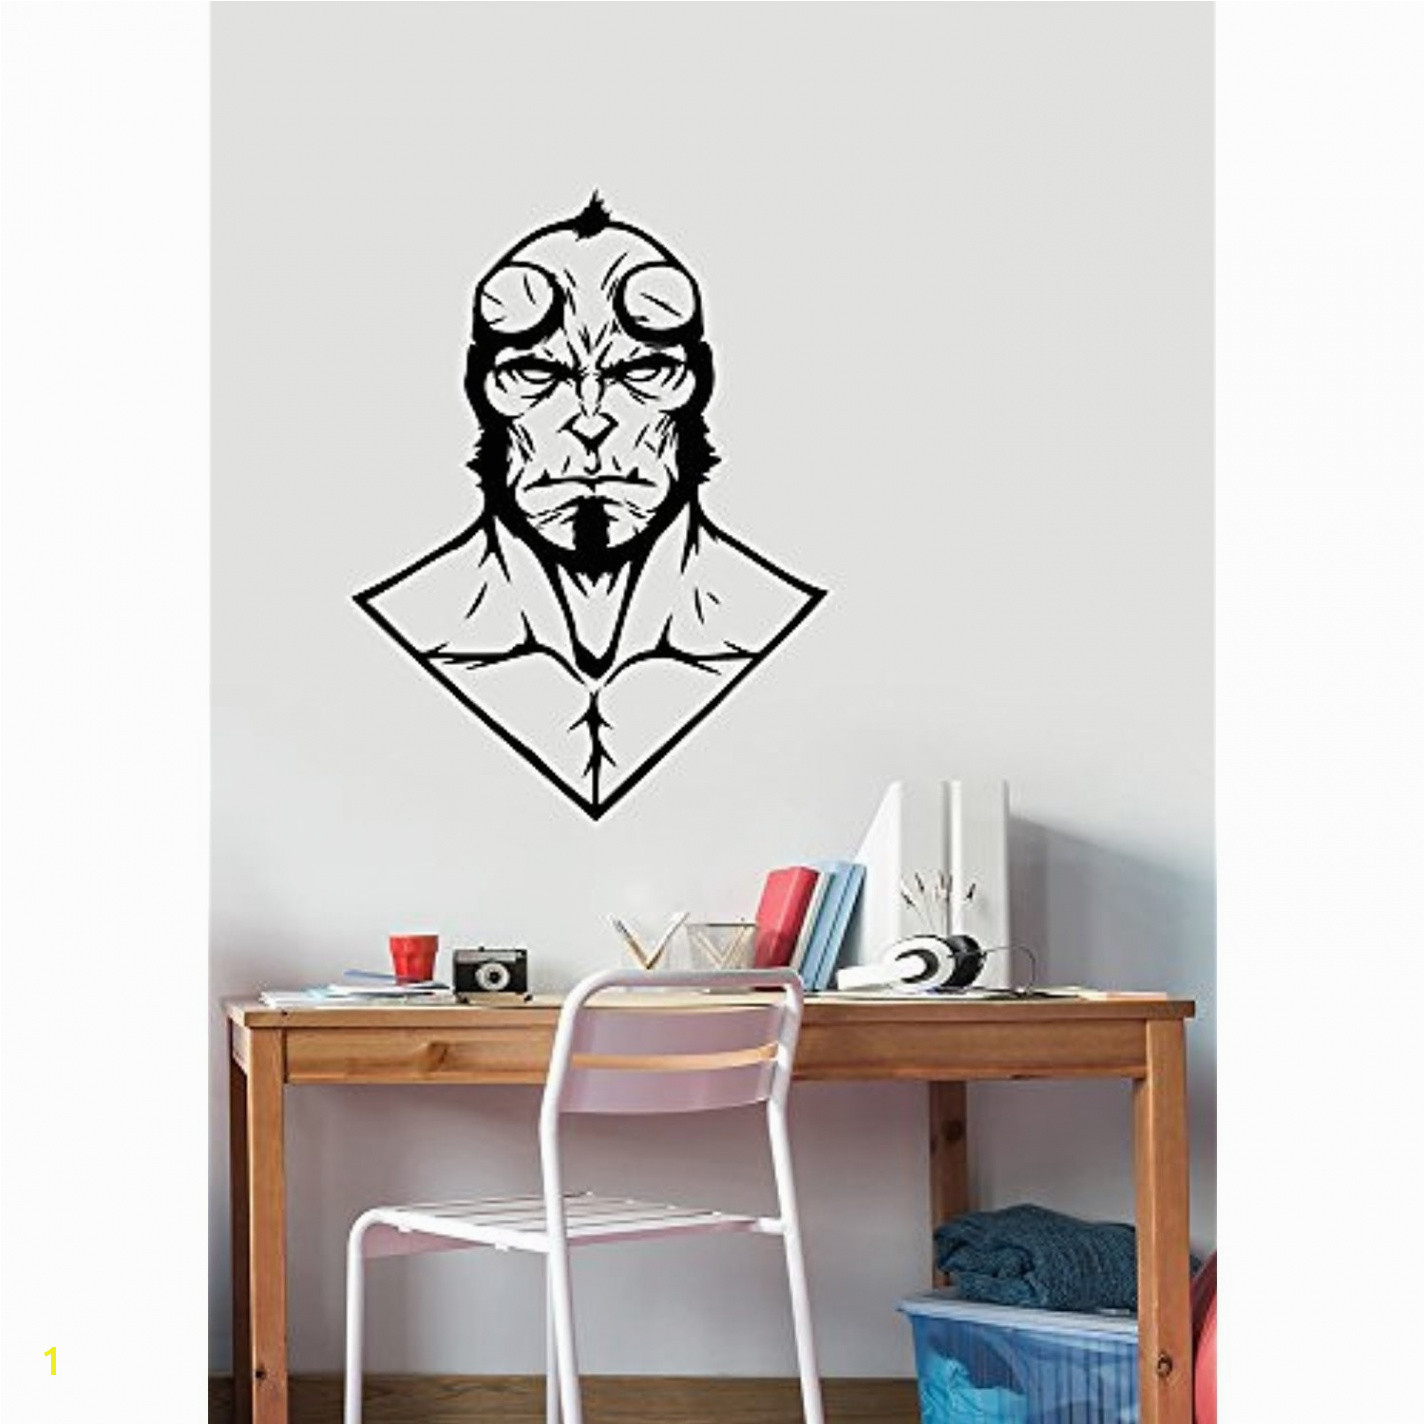 Stickers Mural Wall Decals for Bedroom Unique 1 Kirkland Wall Decor Home Design 0d